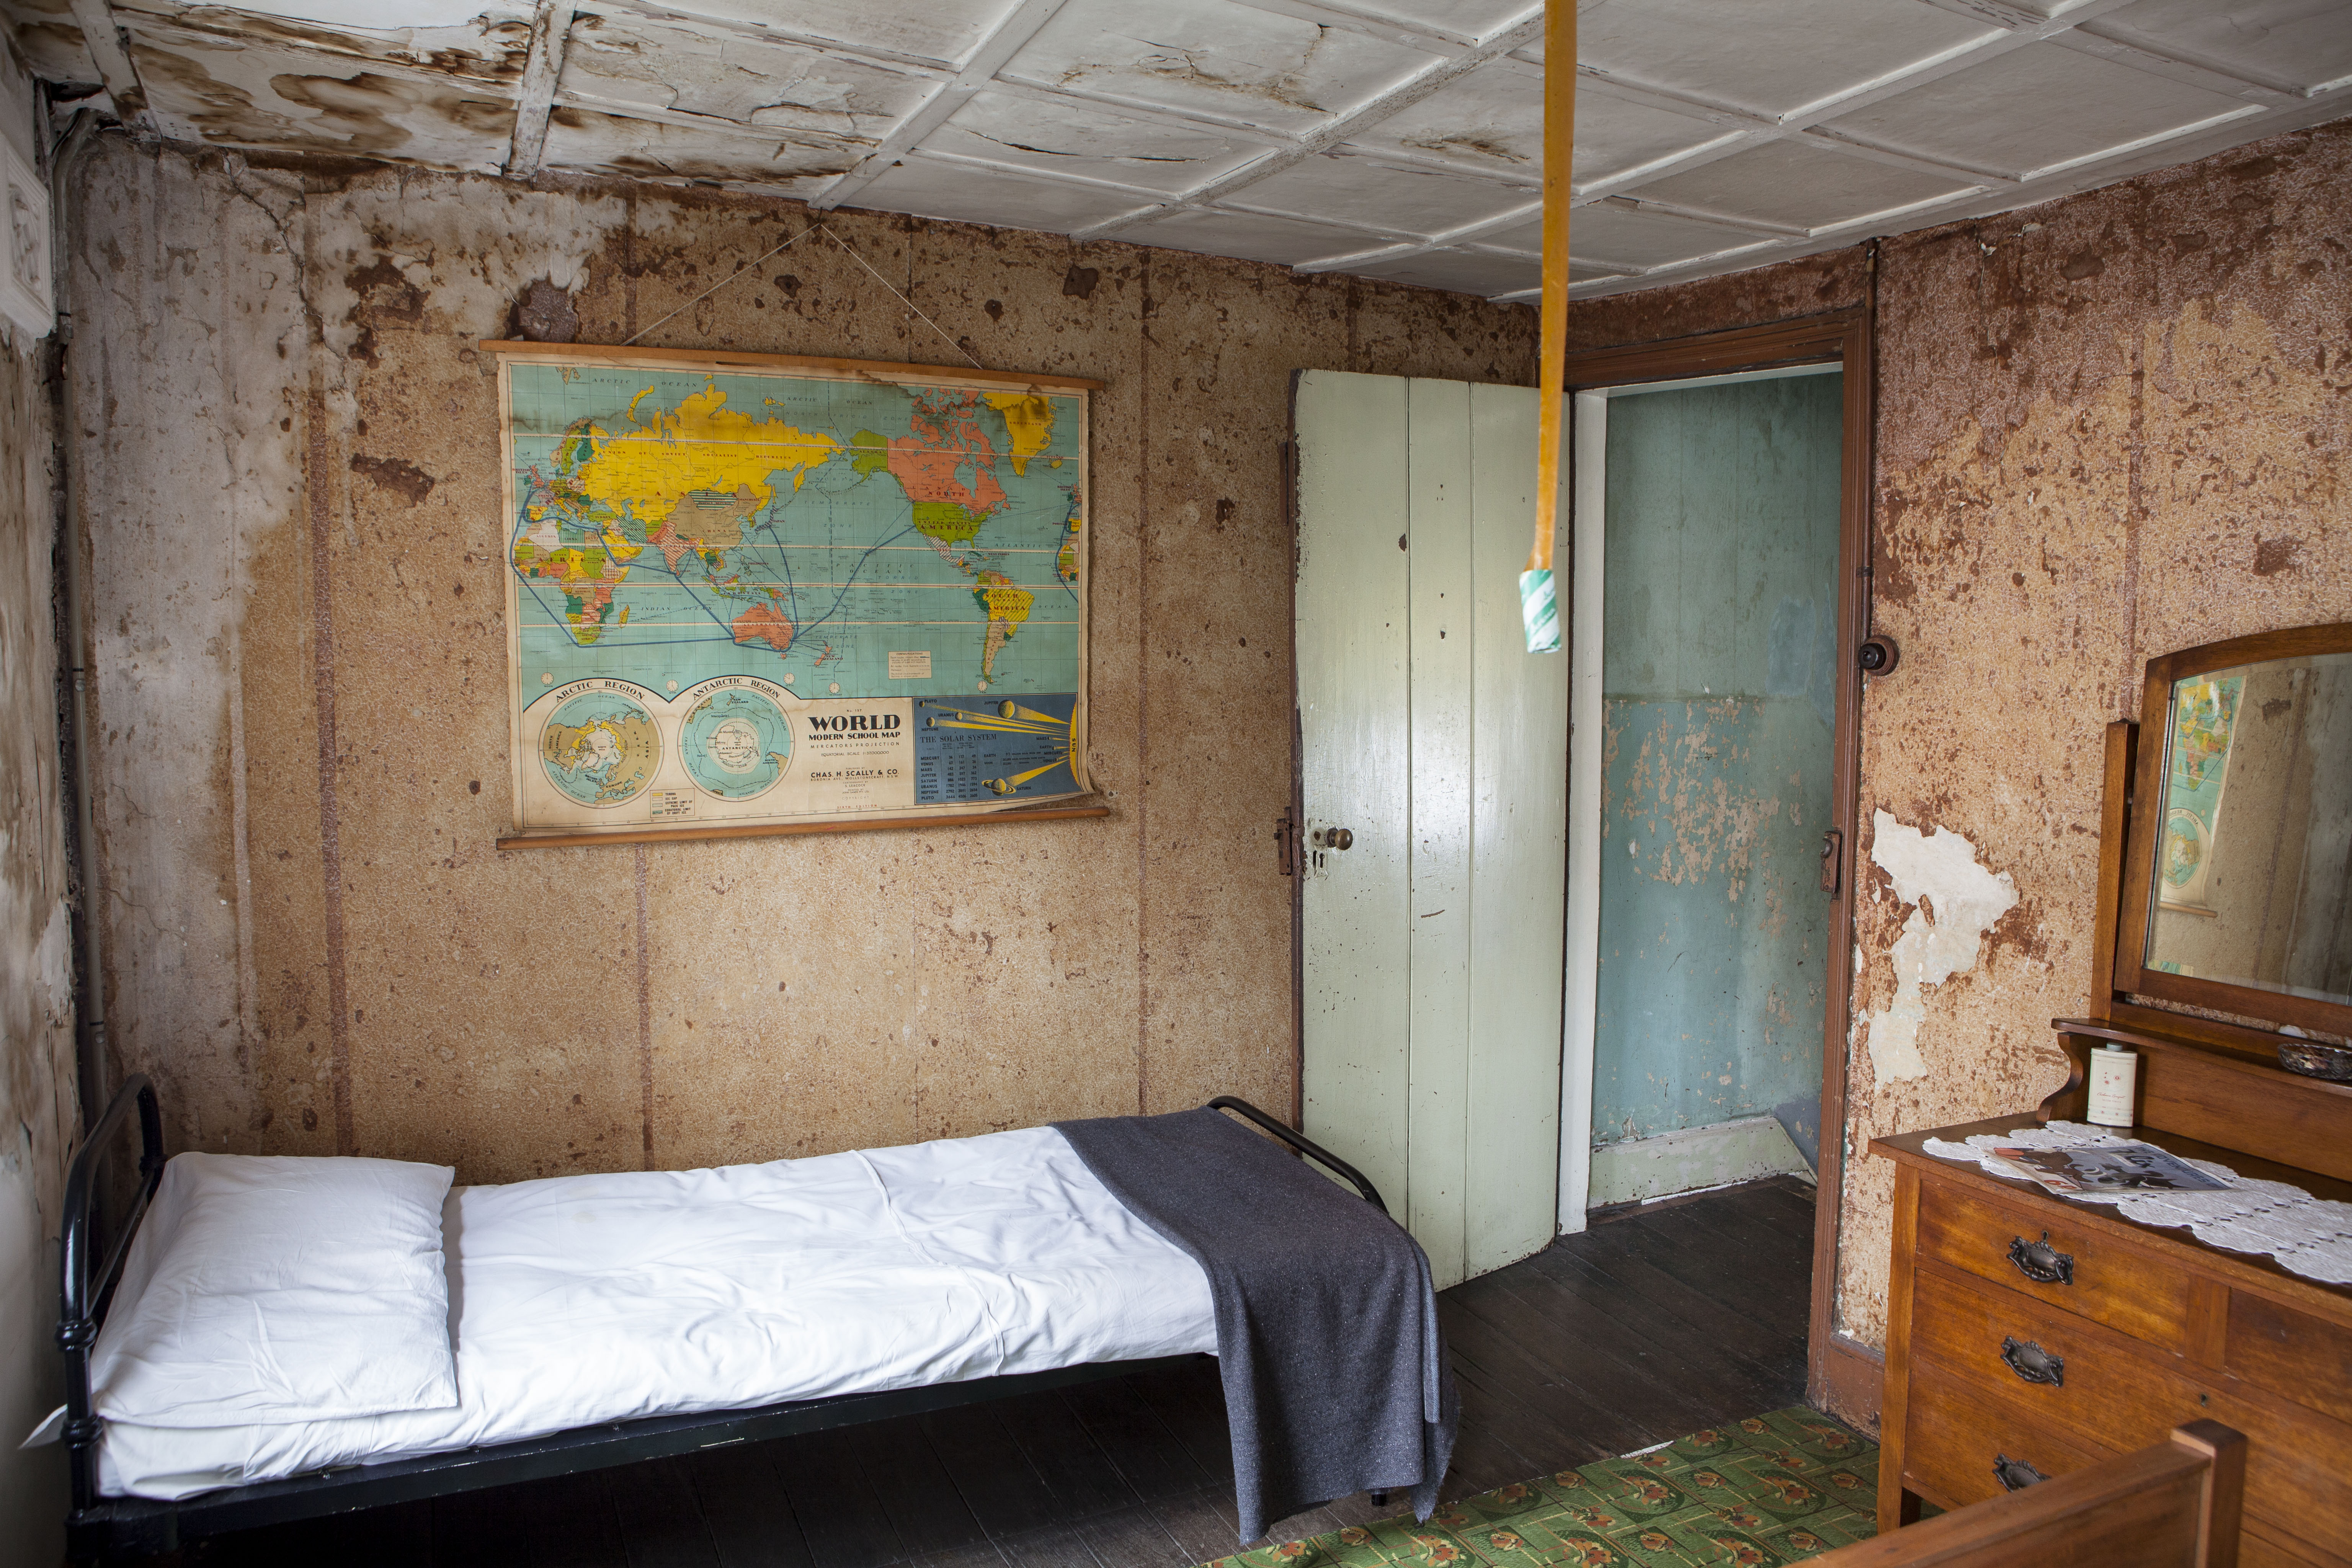 View of a bedroom with faded and torn wallpaper with an old map of the world on one wall, a single bed, dressing table and view through a door to the top of a staircase, with faded and damaged paintwork.